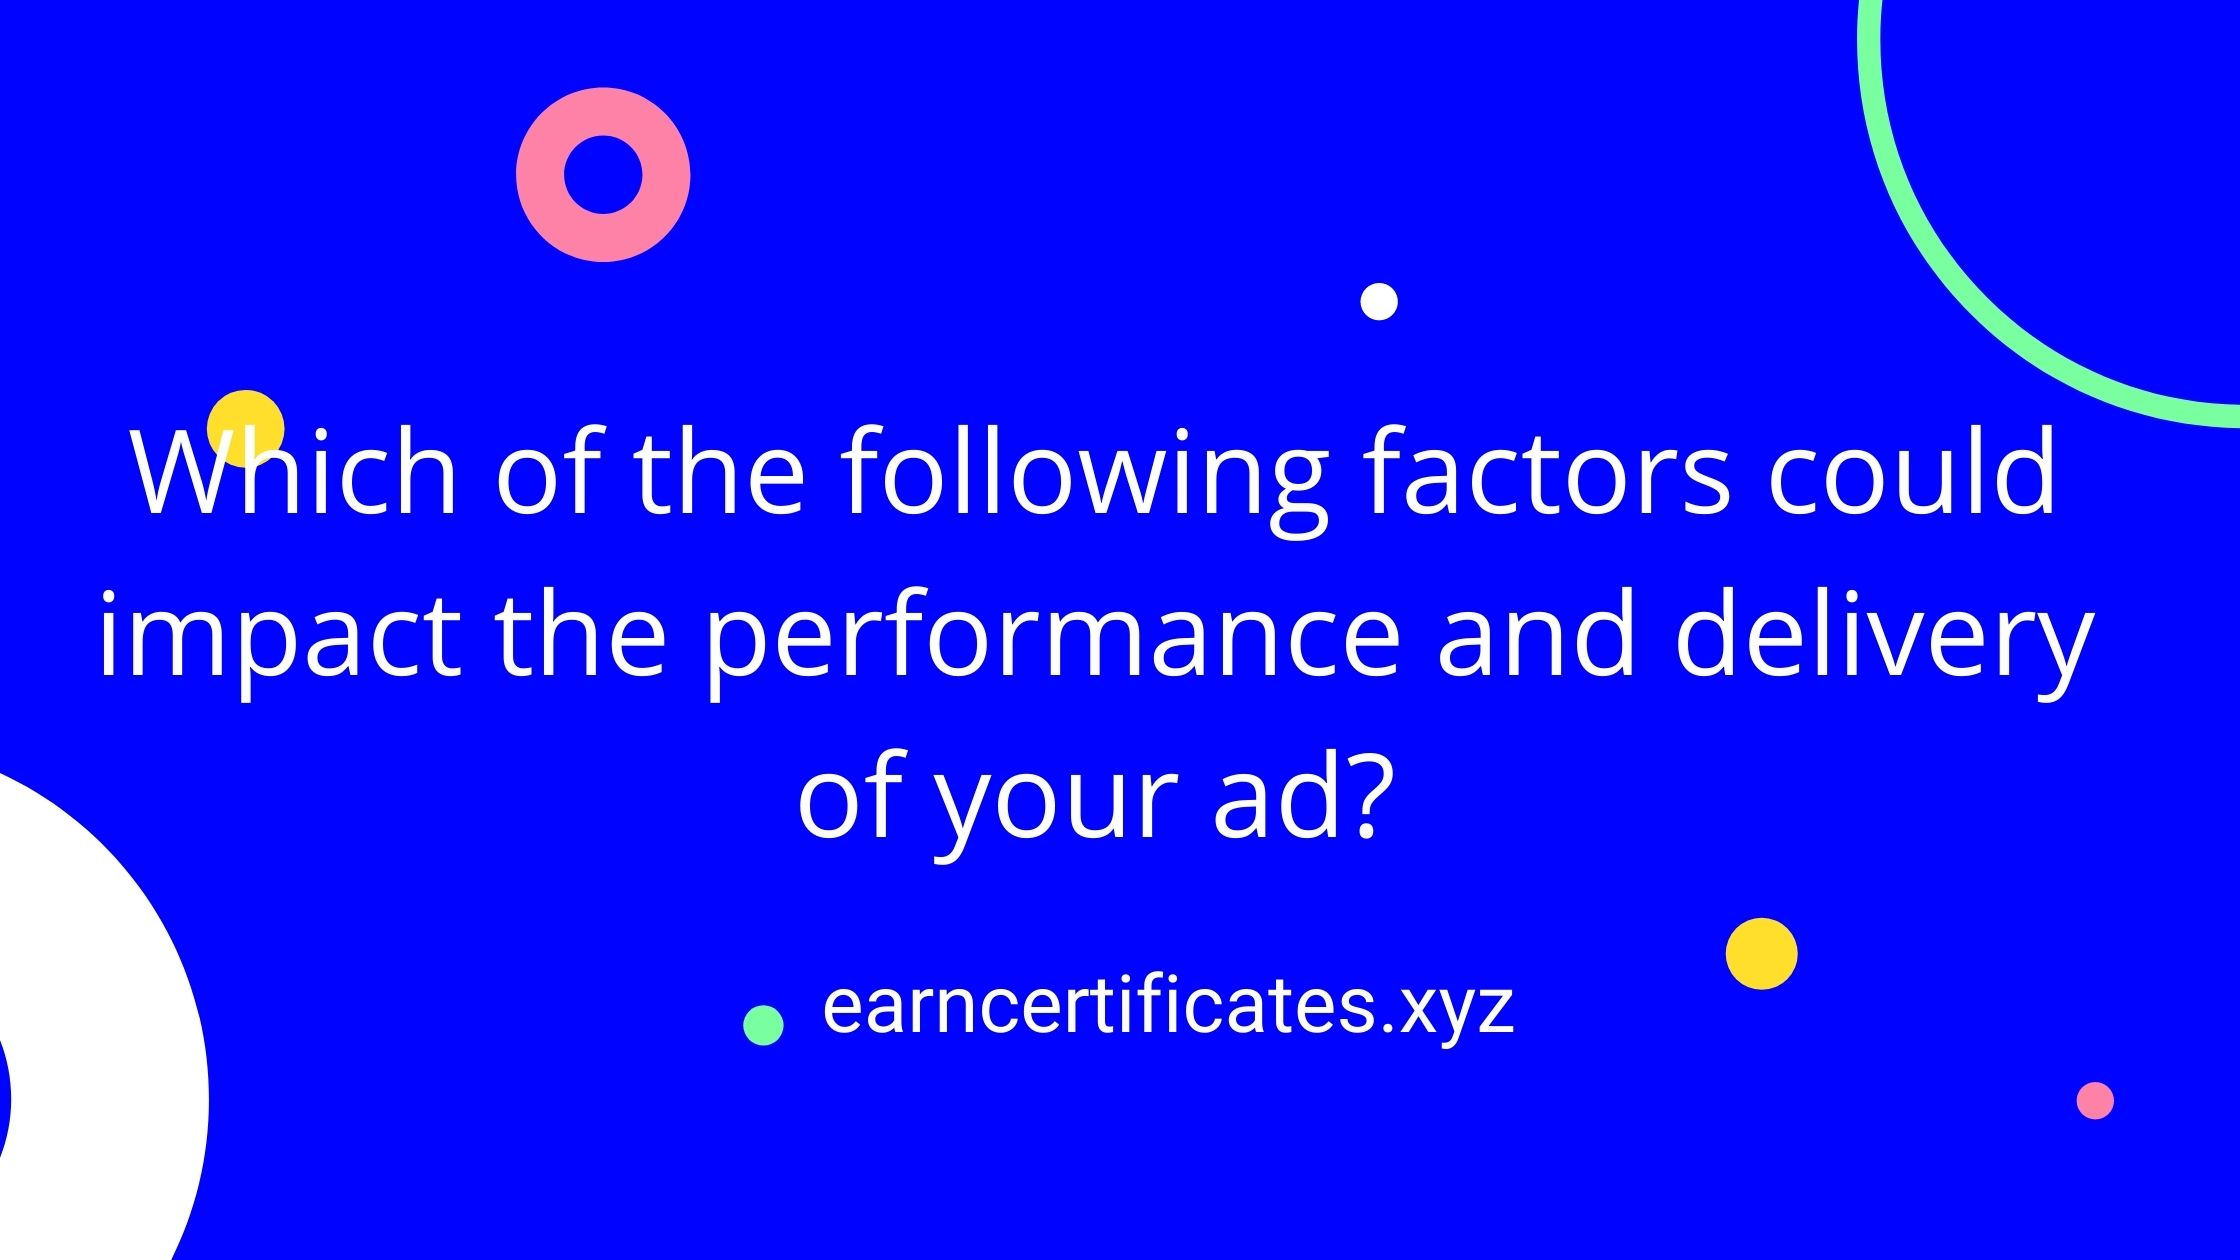 Which of the following factors could impact the performance and delivery of your ad?